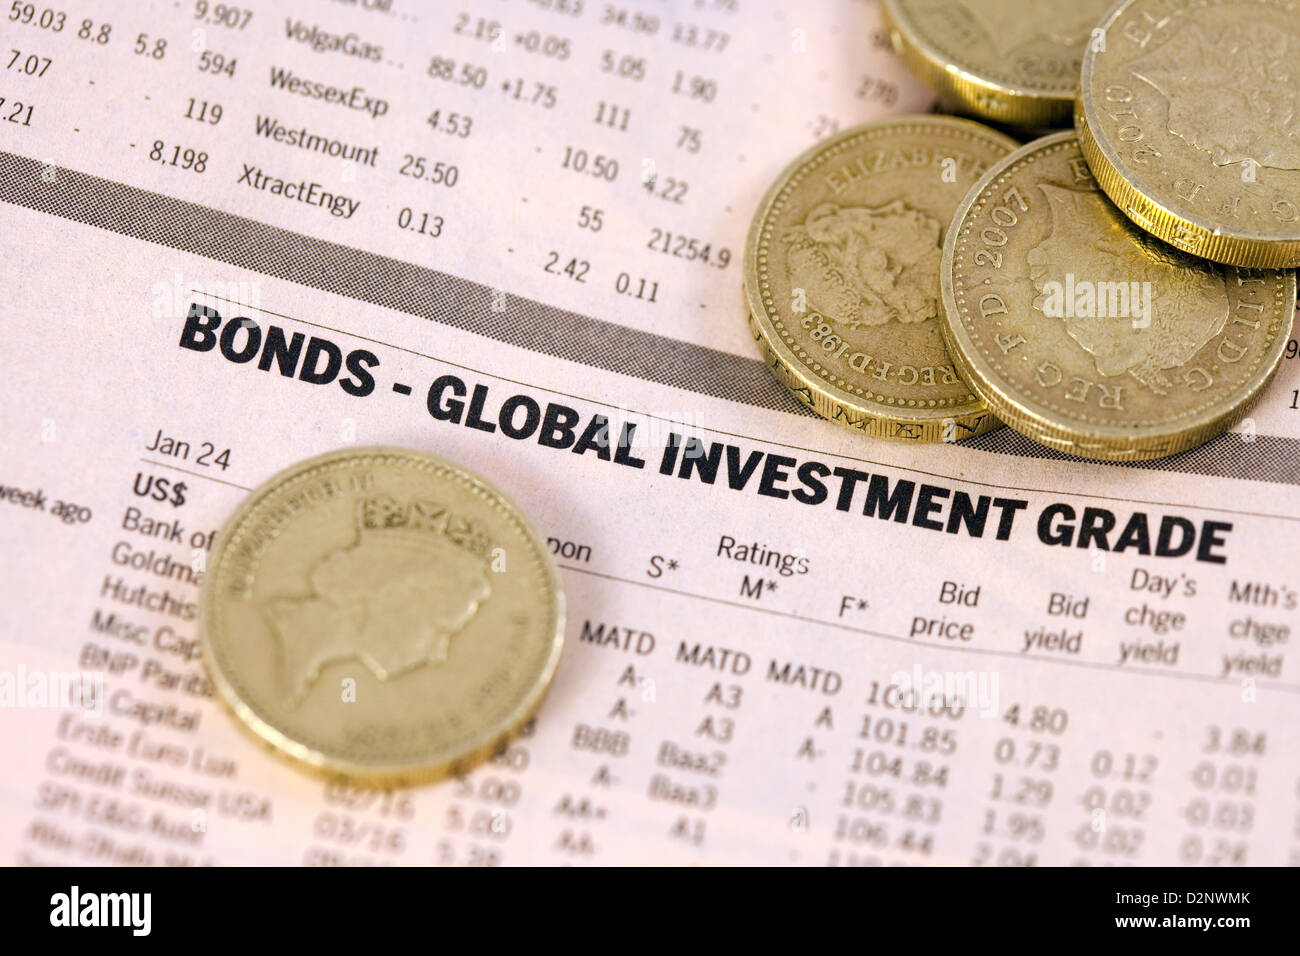 Bonds - Global Investment Grade - listing in the Financial Times newspaper, UK - Stock Image